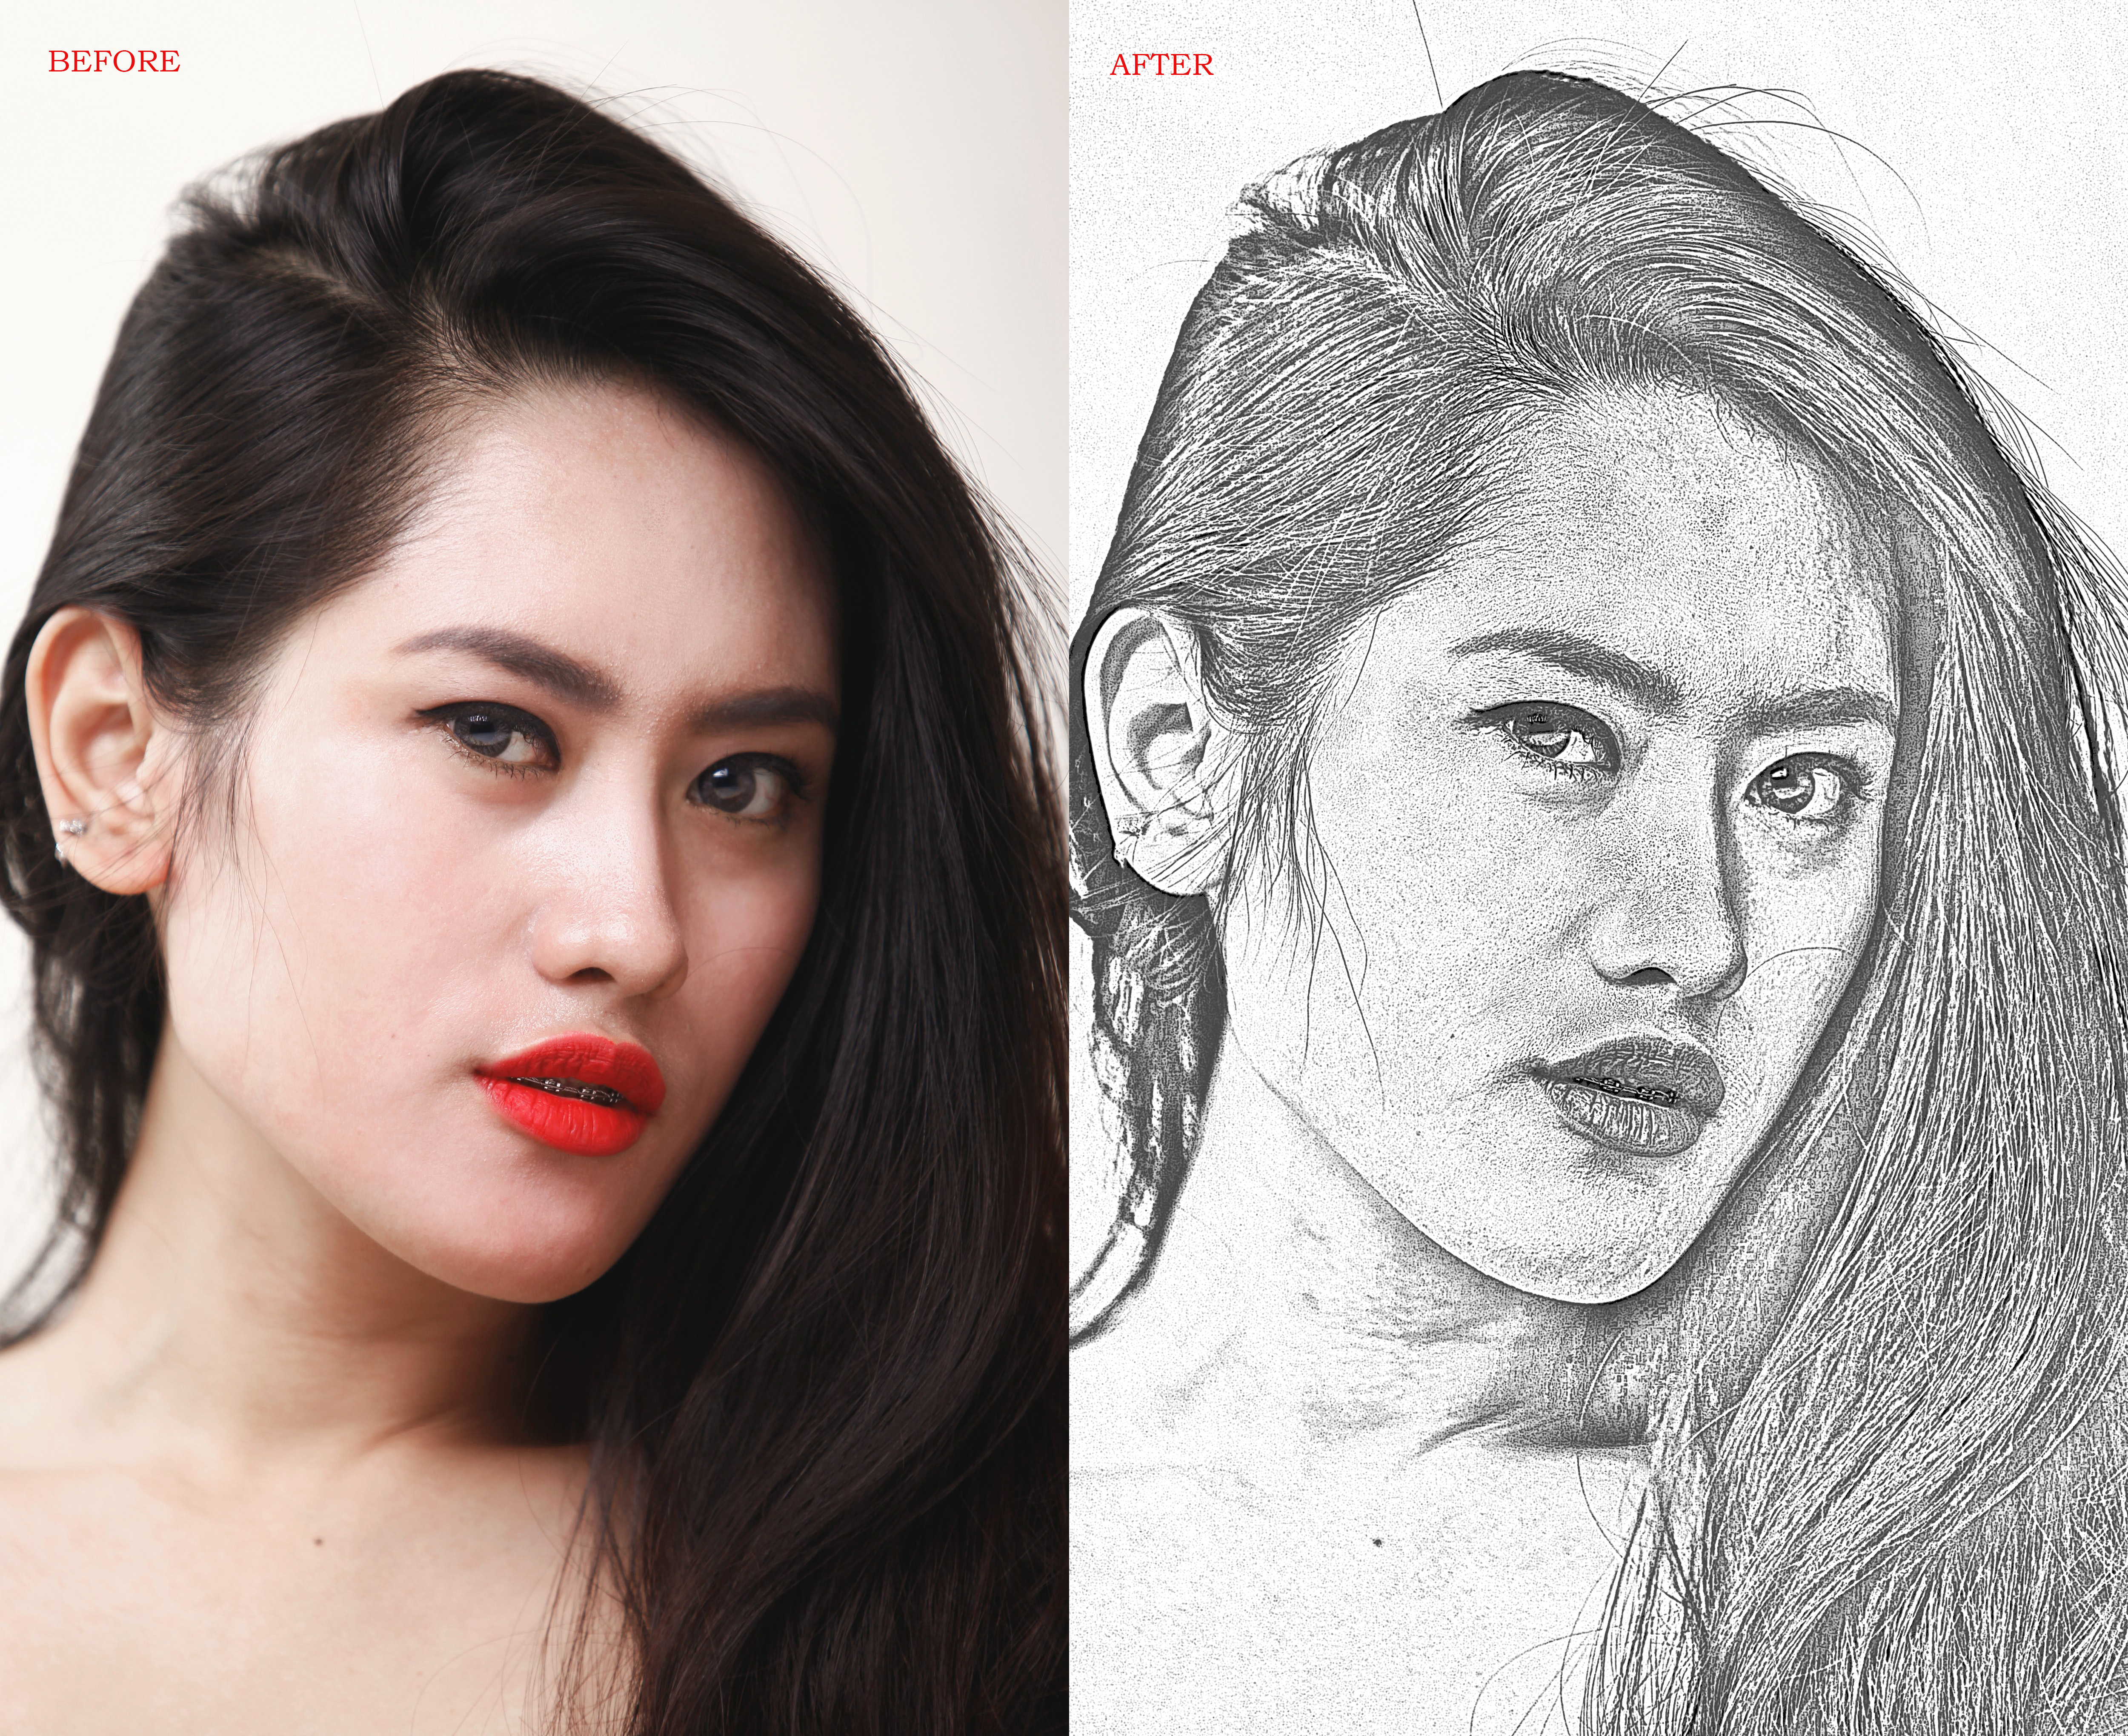 I will draw realistic pencil sketch from your photo